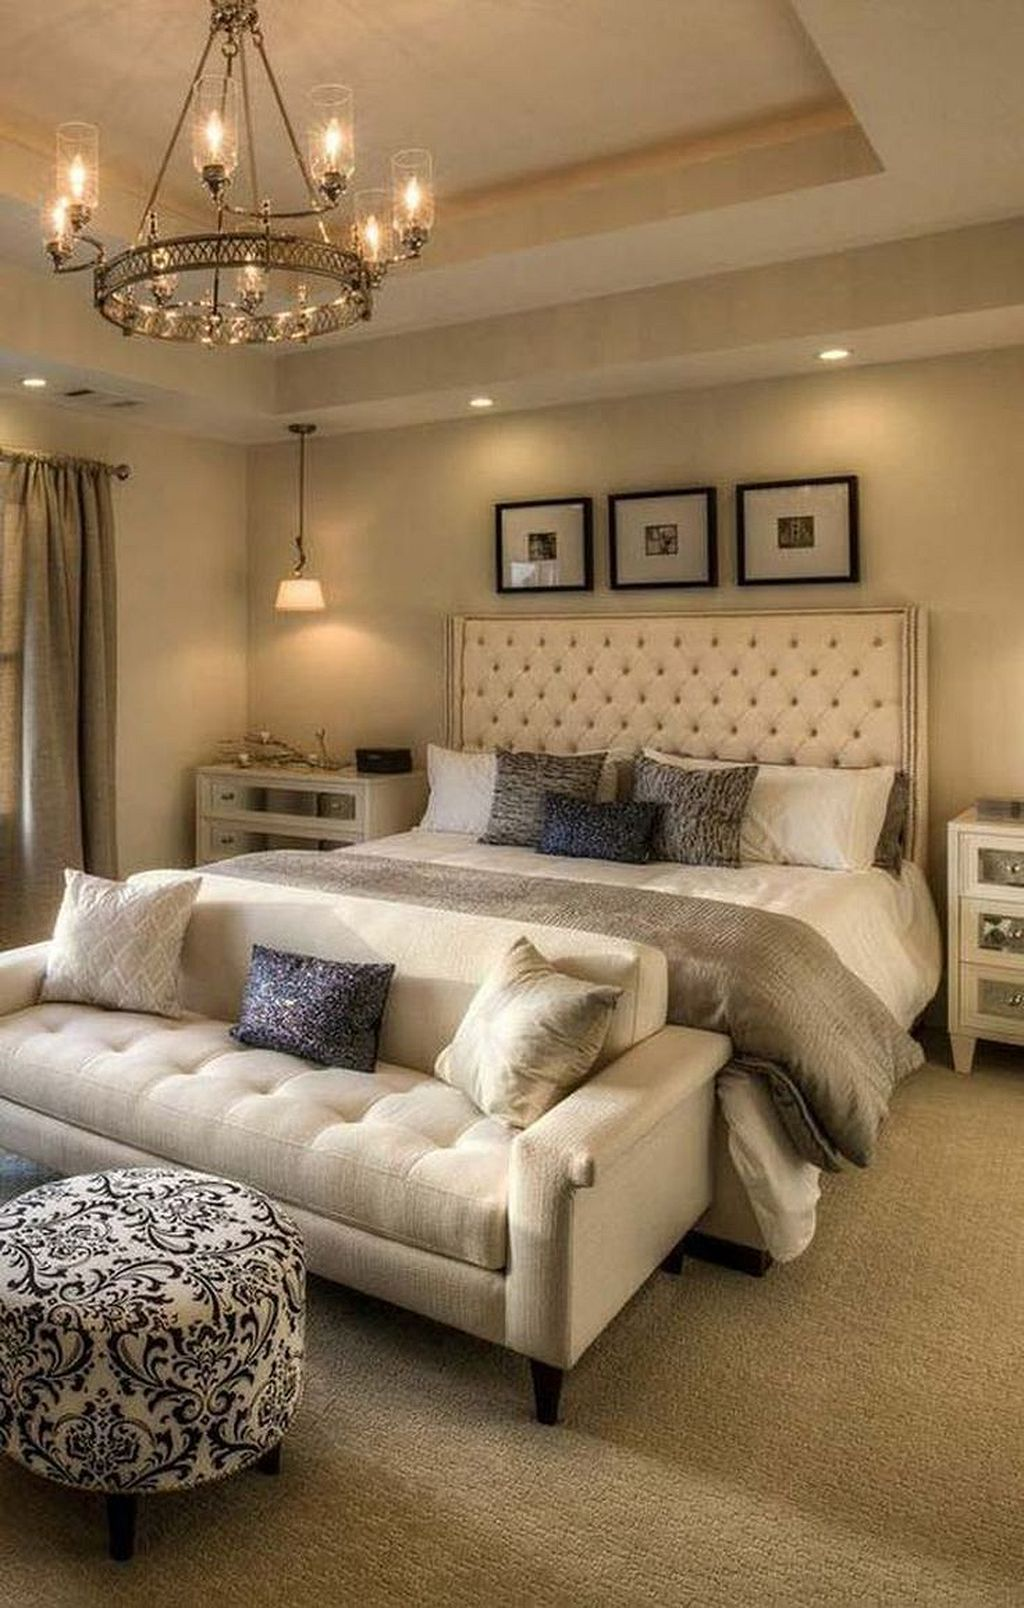 Awesome 50 Awesome Romantic Master Bedroom Design Ideas